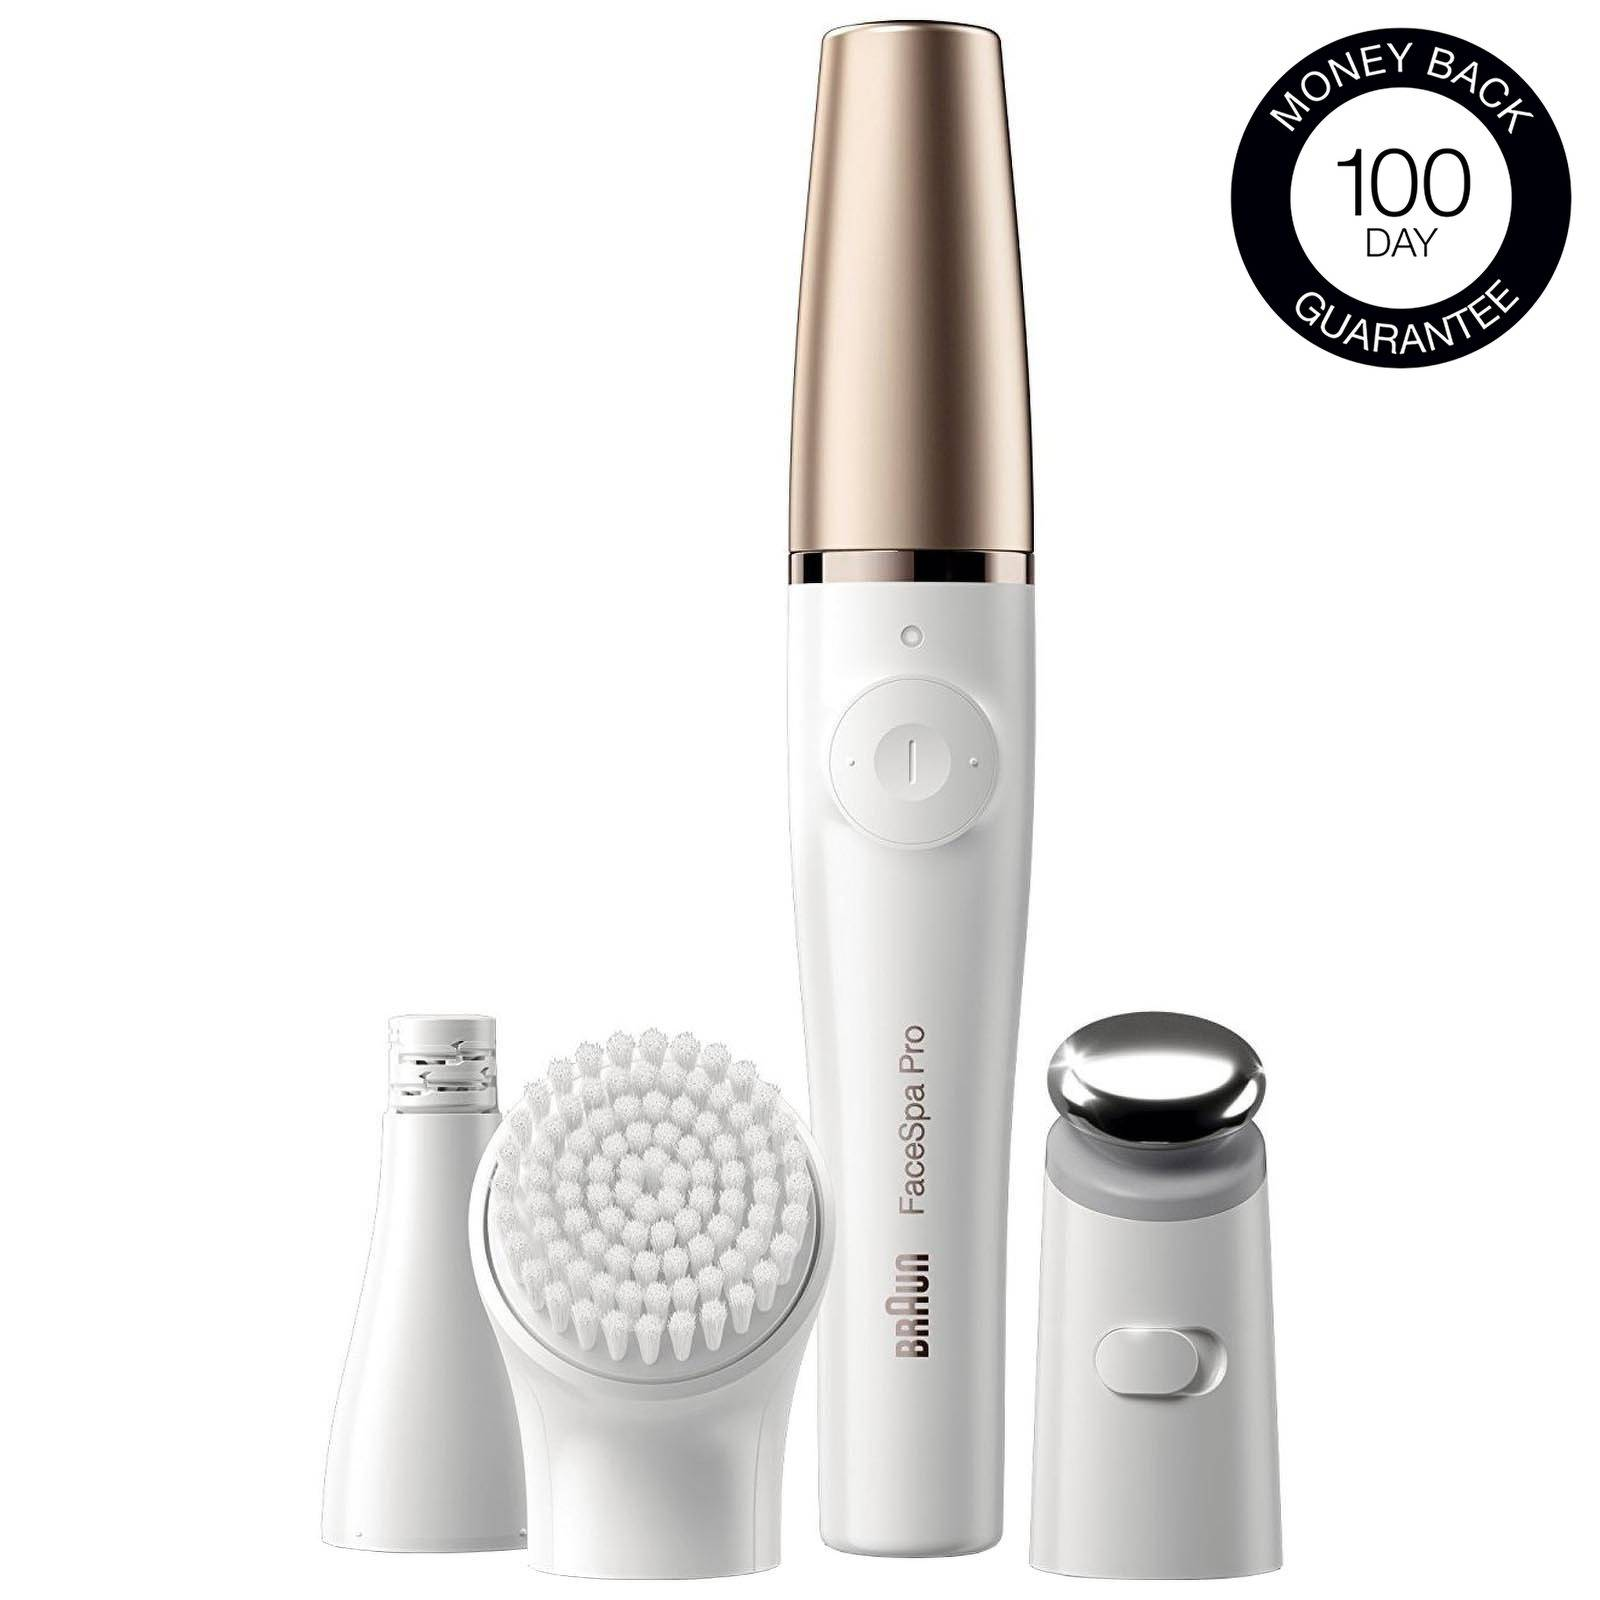 Braun - FaceSpa Pro 911 3-in-1 Facial Epilating, Cleansing & Skin Toning System with 5 Extras for Women